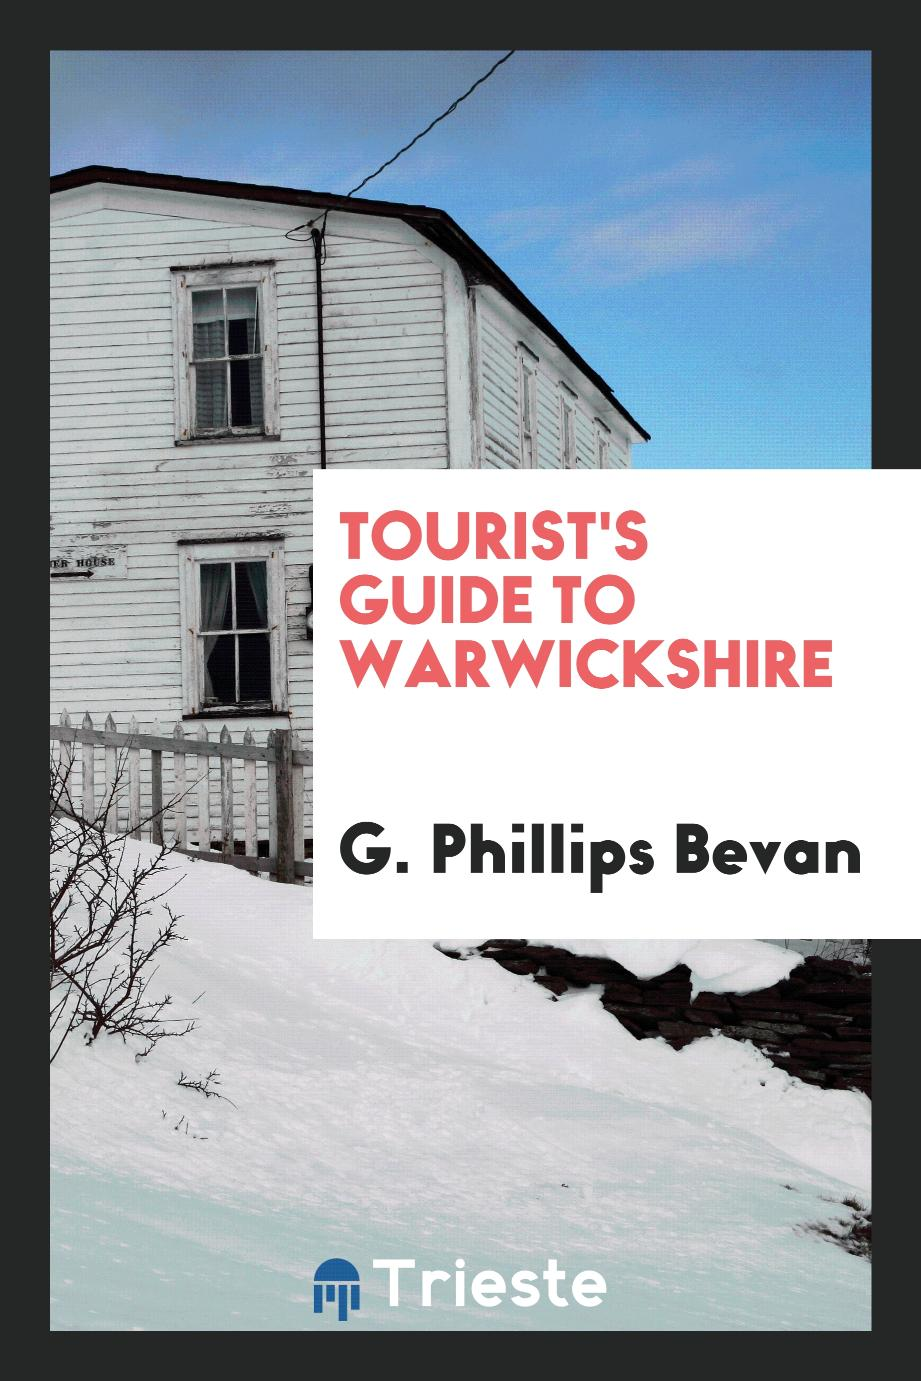 Tourist's Guide to Warwickshire